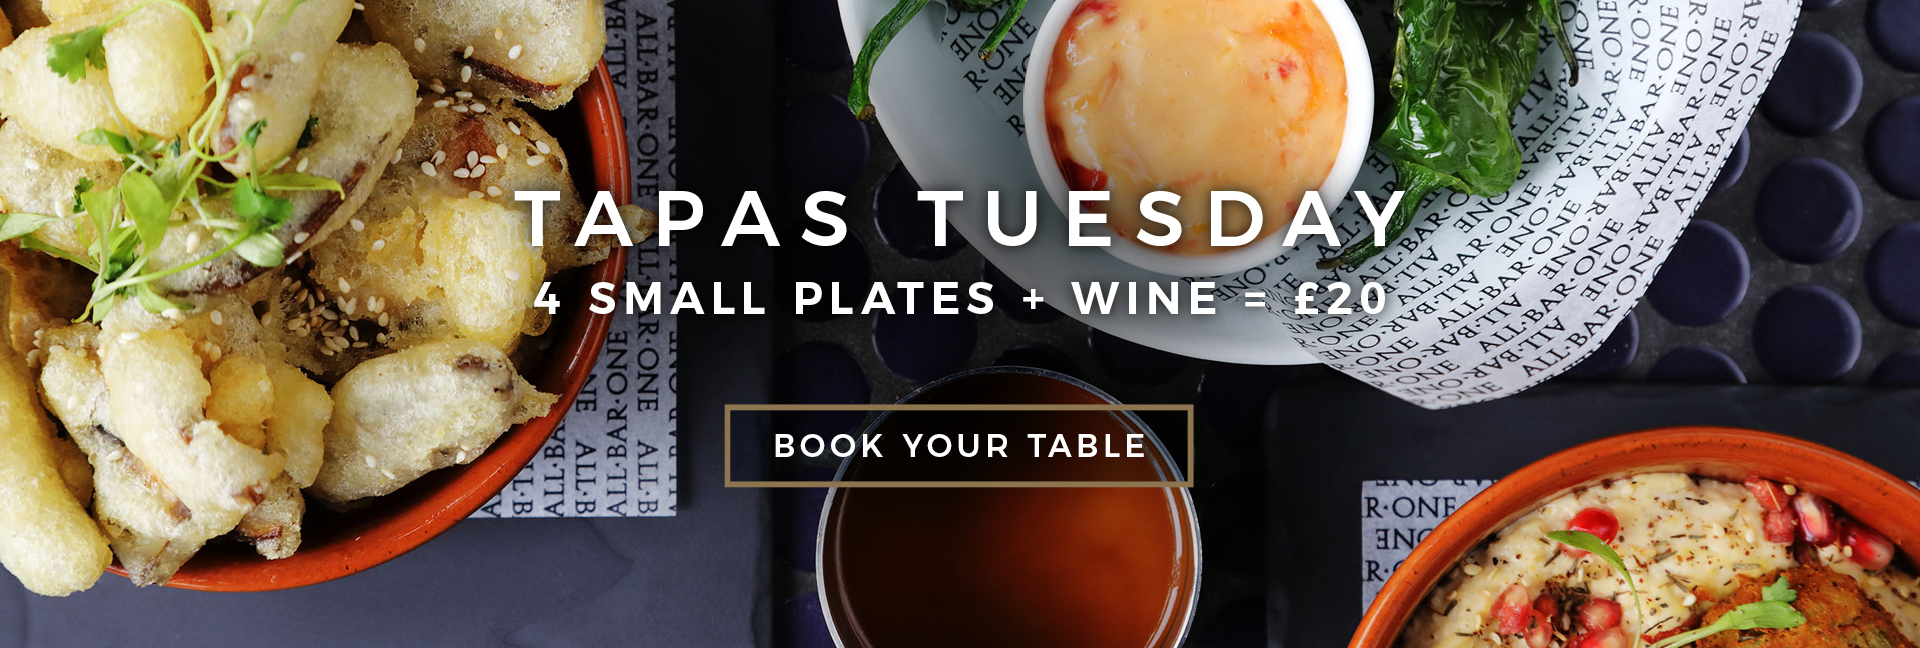 Tapas Tuesday at All Bar One Regent Street - Book now